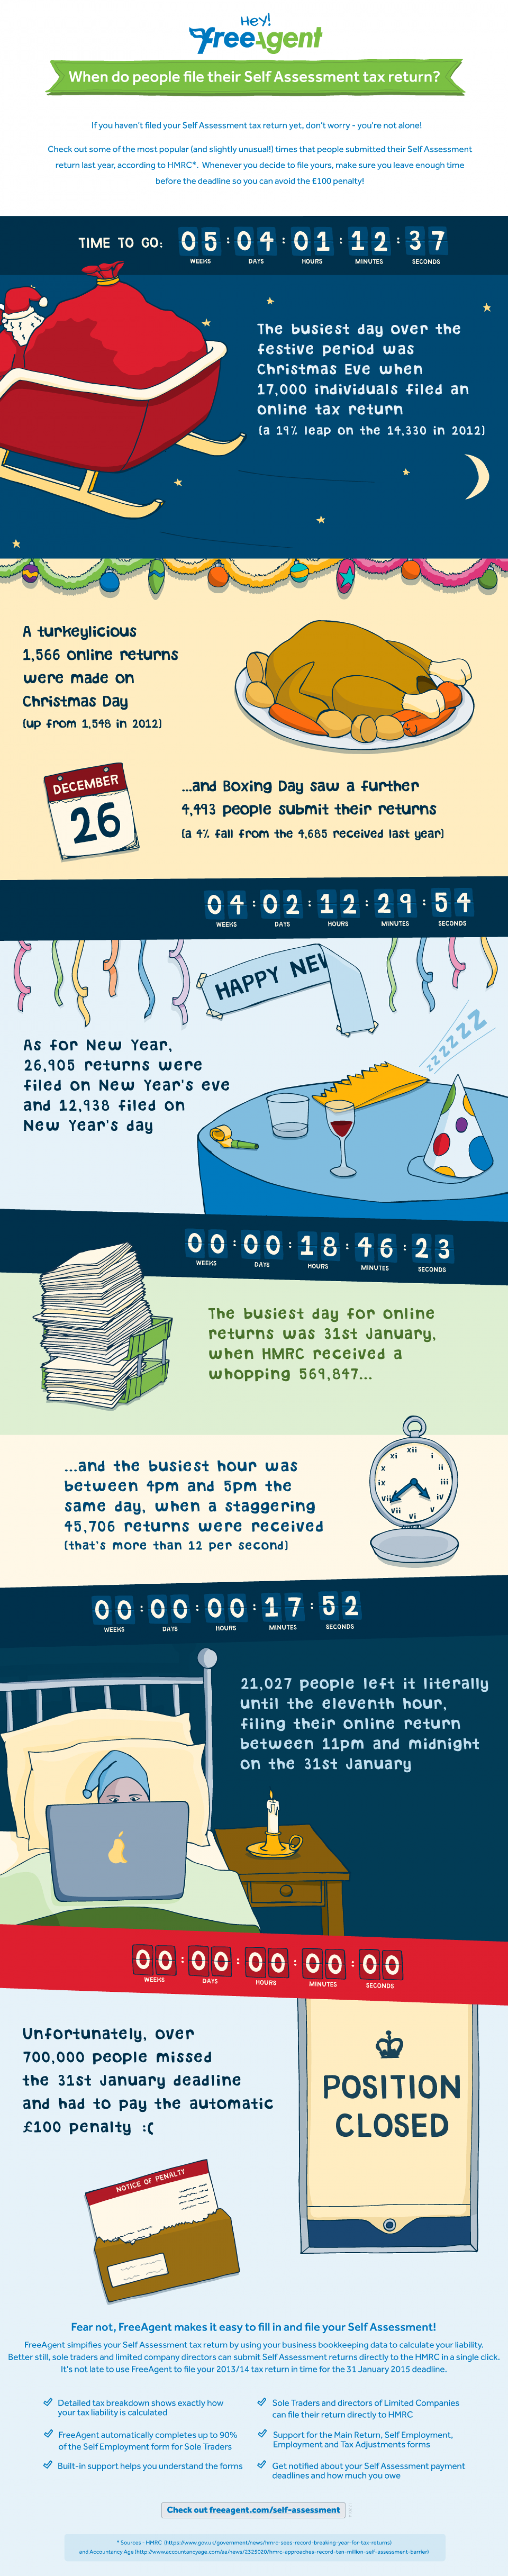 When do people file their Self Assessment tax return? Infographic